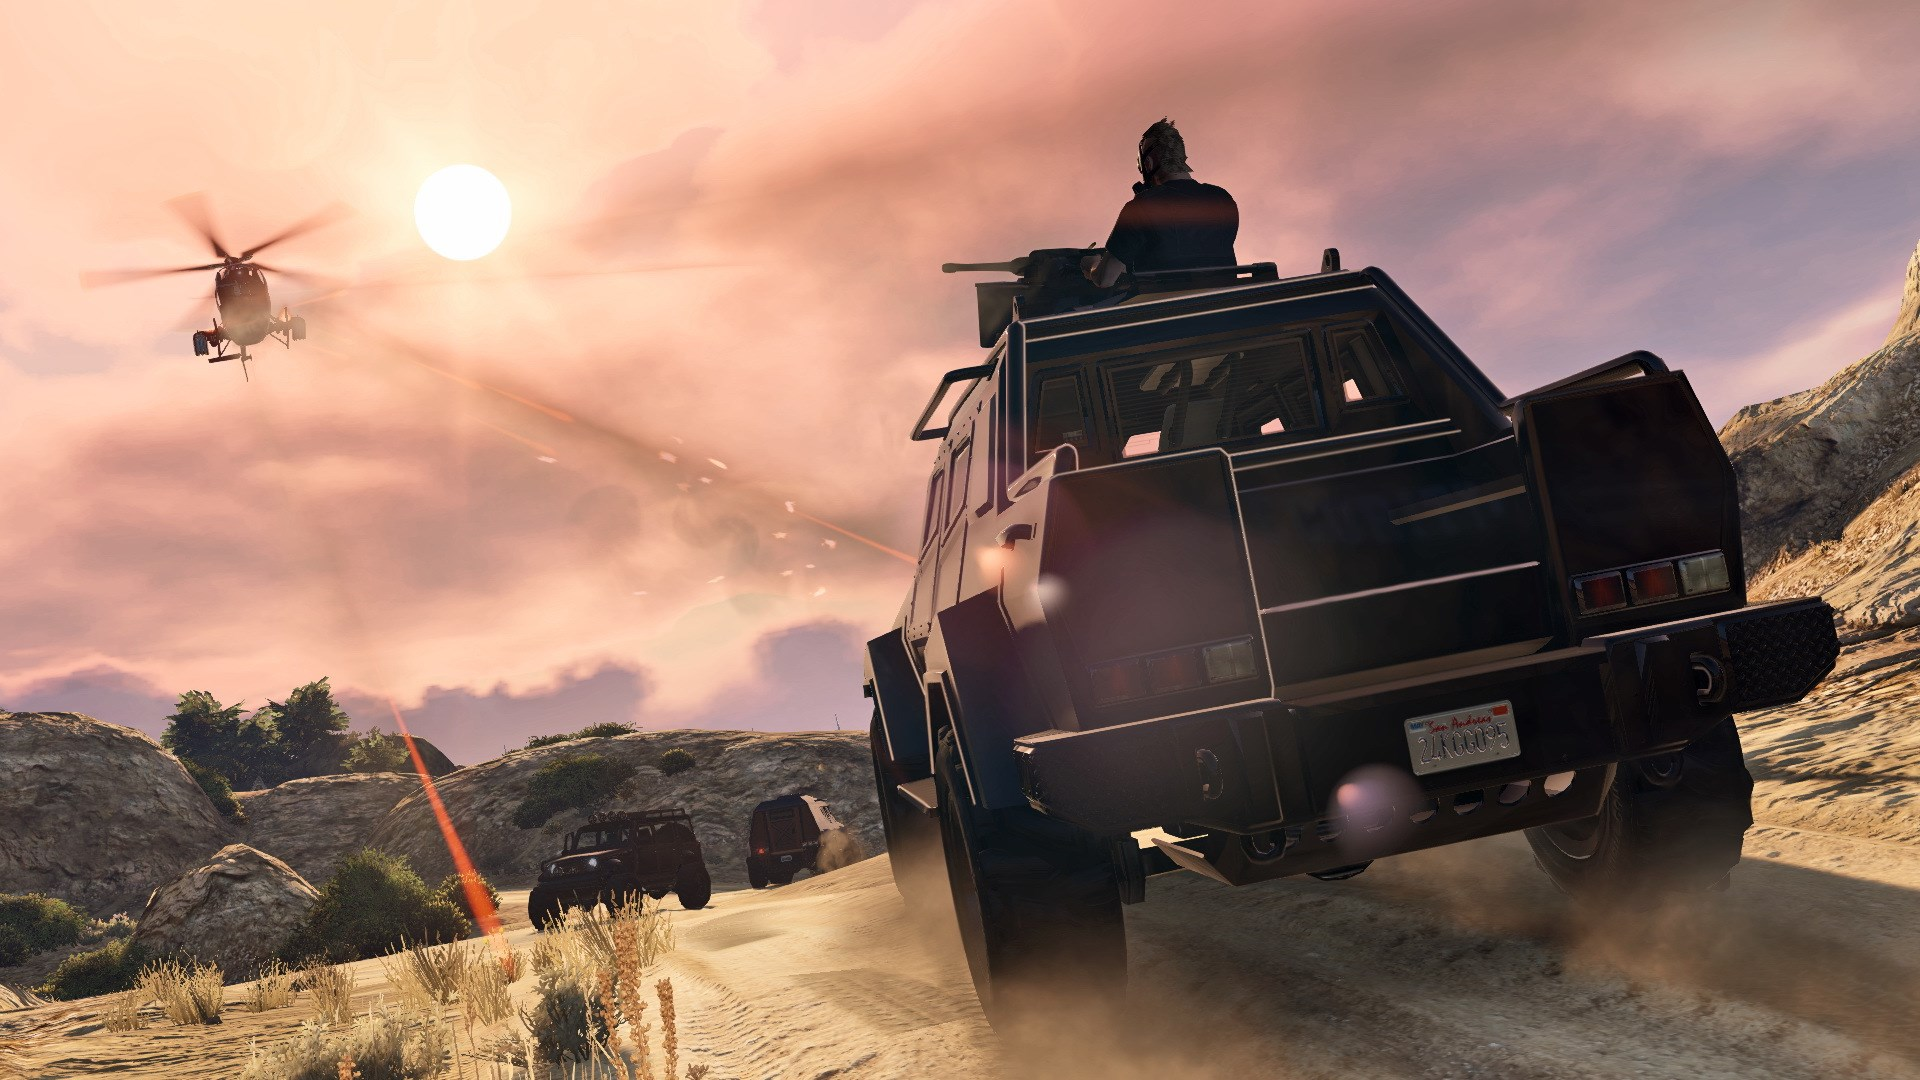 Flemming-Waite-grand-theft-auto-online-Full-HD-Pictures-1920x1080-px-wallpaper-wp3405586